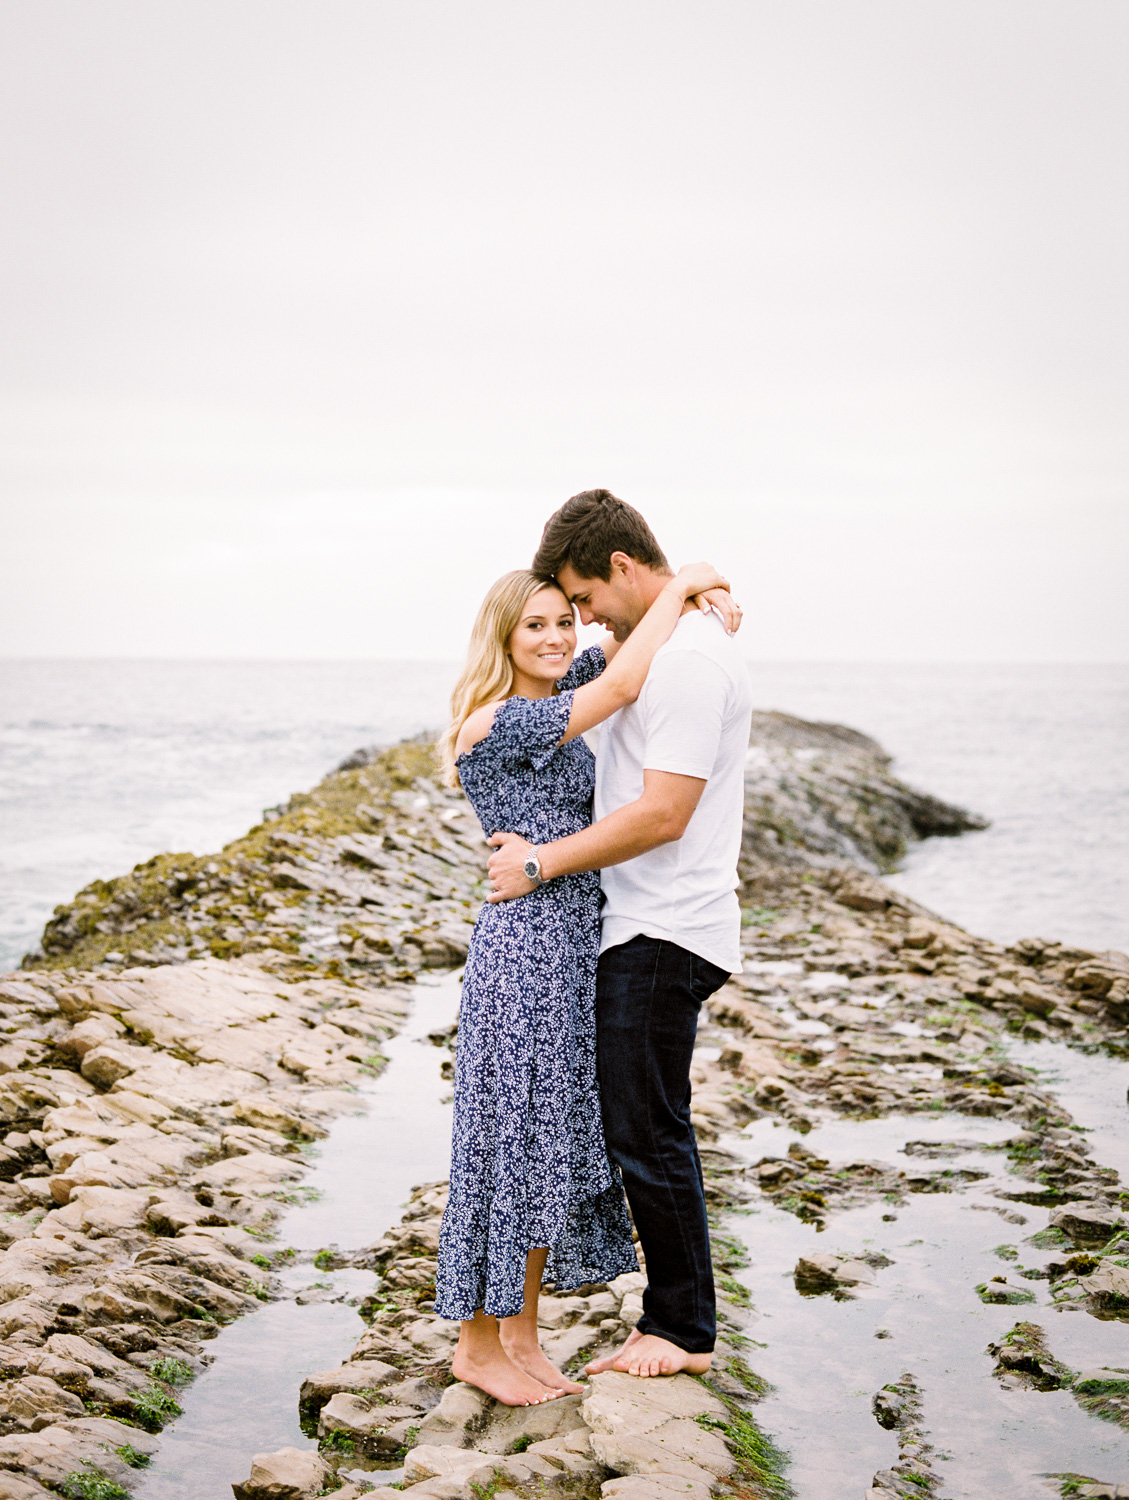 Ashley-Rae-Studio-San-Luis-Obispo-Engagement-Session-Santa-Barbara-Wedding-Photographer-153.jpg